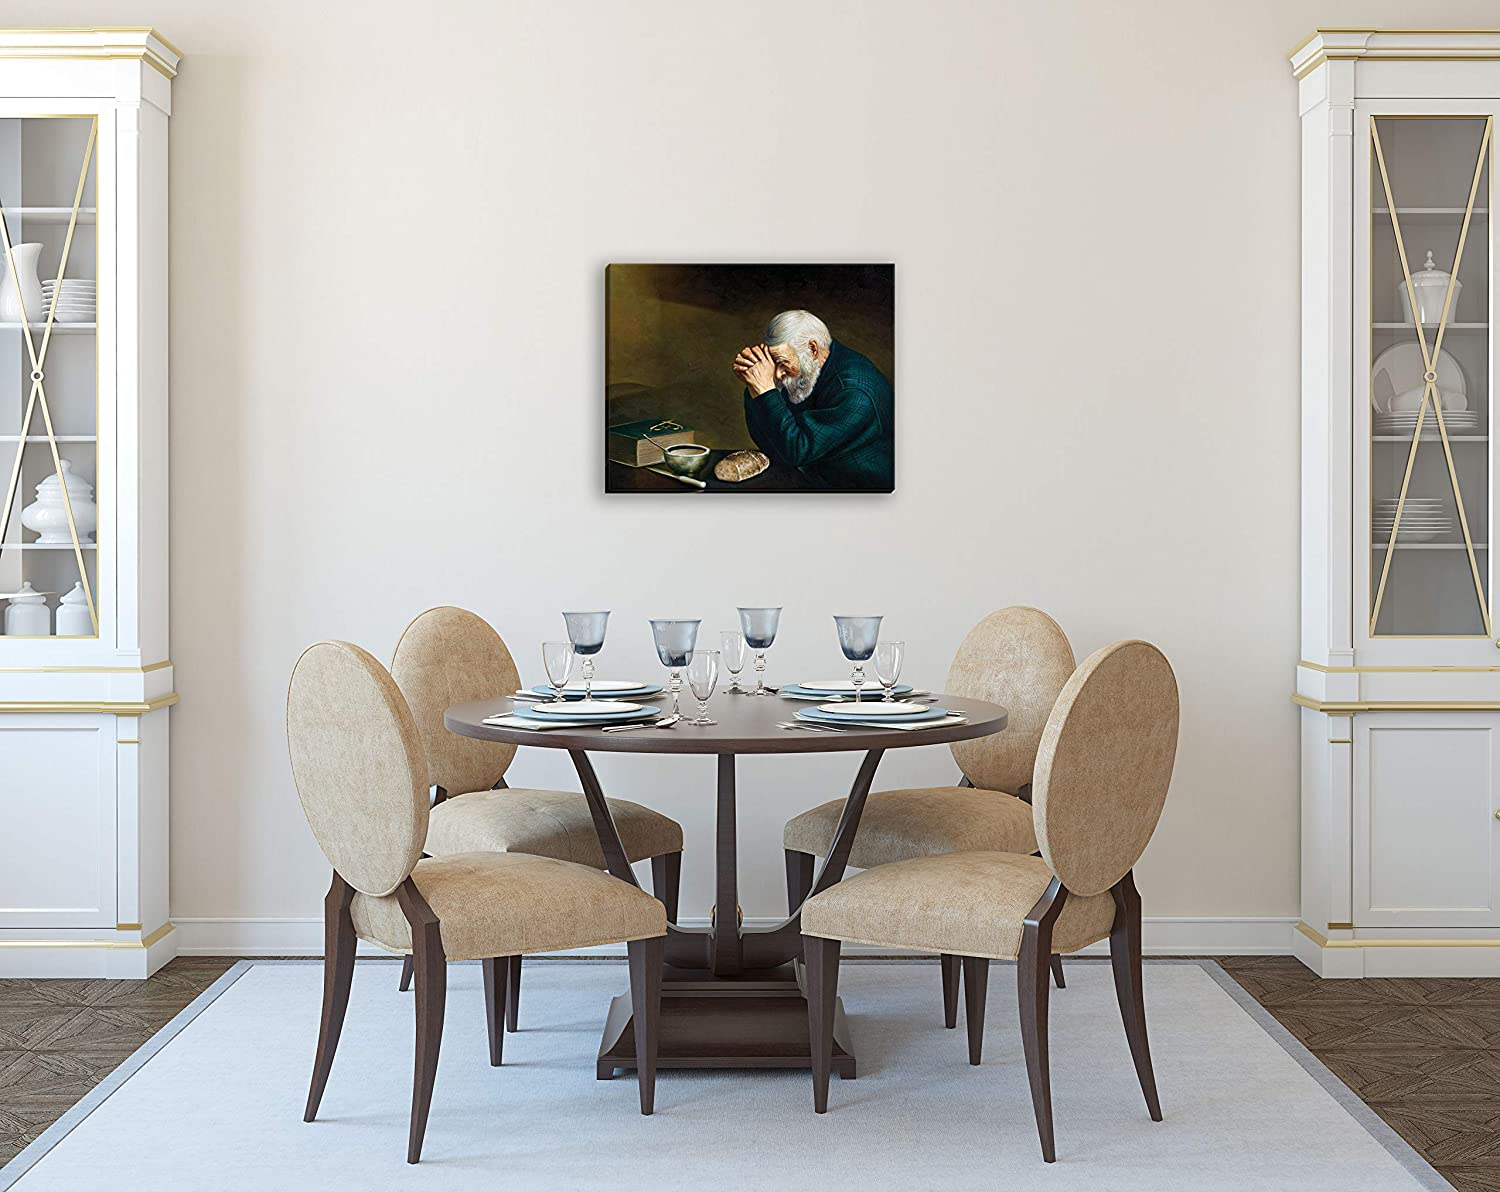 Gango Home Décor Daily Bread Man Praying at Dinner Table Grace Religious 20x16in Hand Stretched Canvas-Ready to Hang!